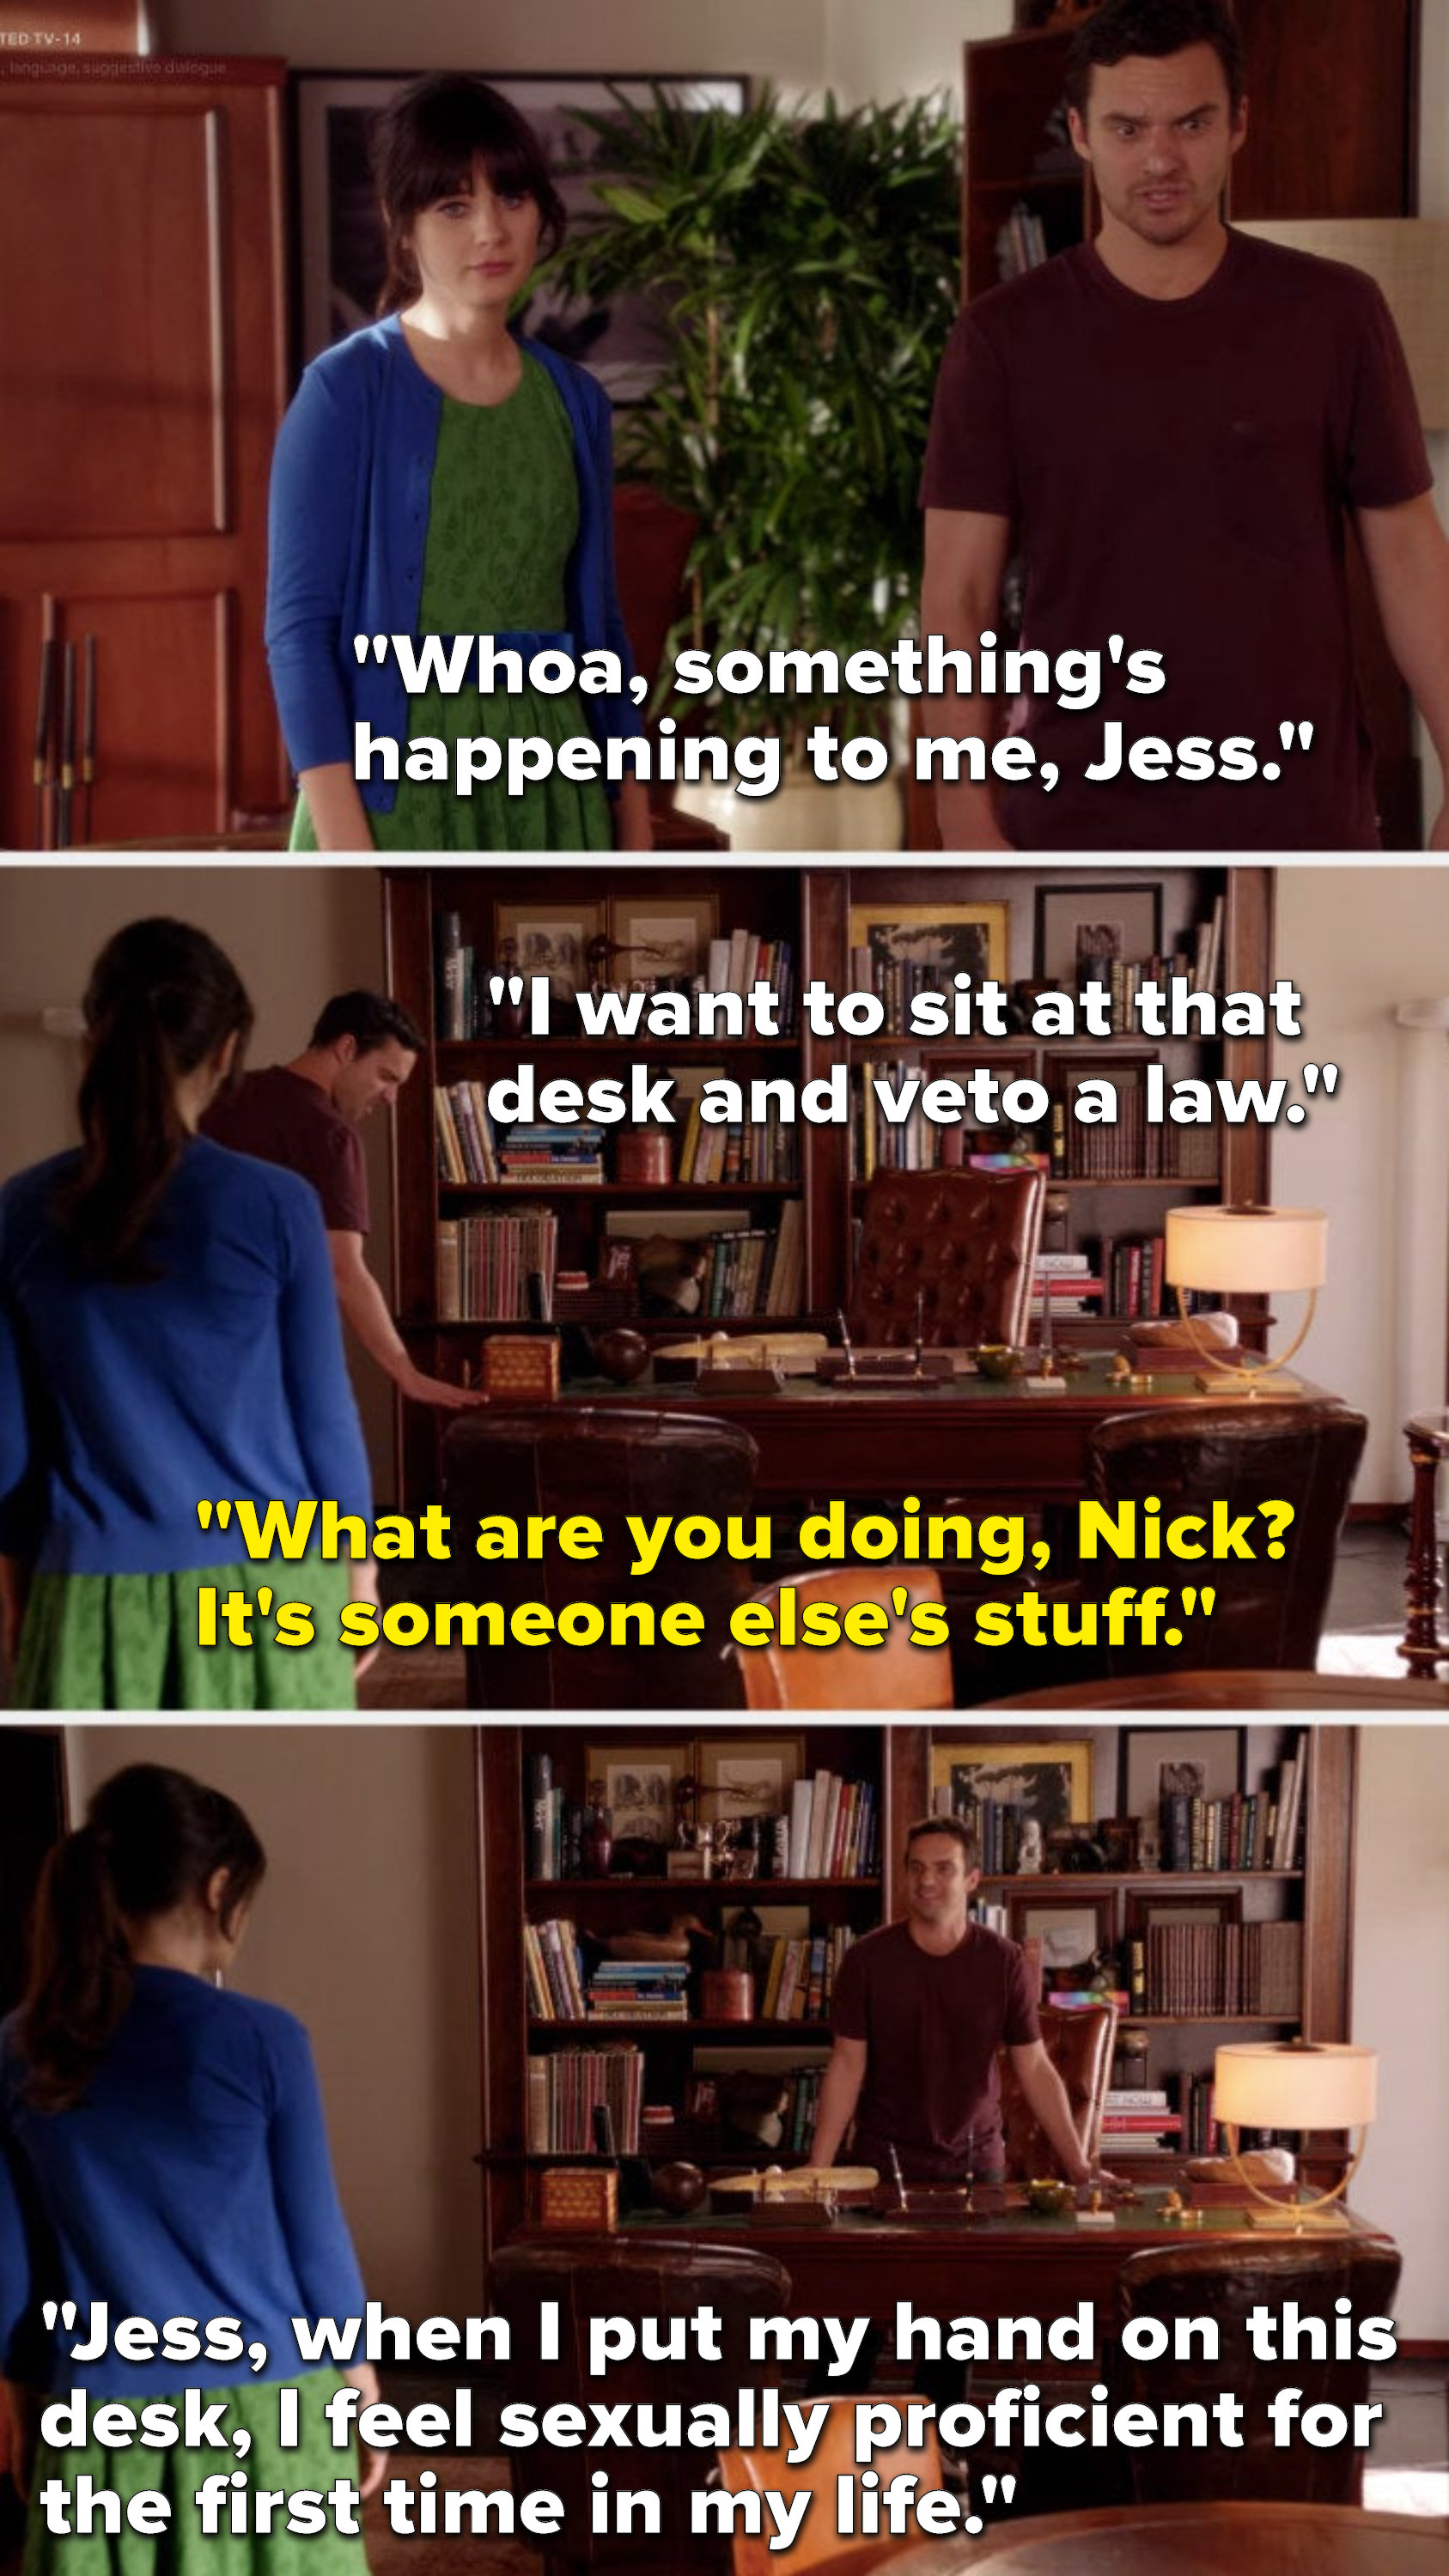 Nick says, Something's happening to me, I want to sit at that desk and veto a law, Jess says, What are you doing, it's someone else's stuff, and he says, When I put my hand on this desk, I feel sexually proficient for the first time in my life